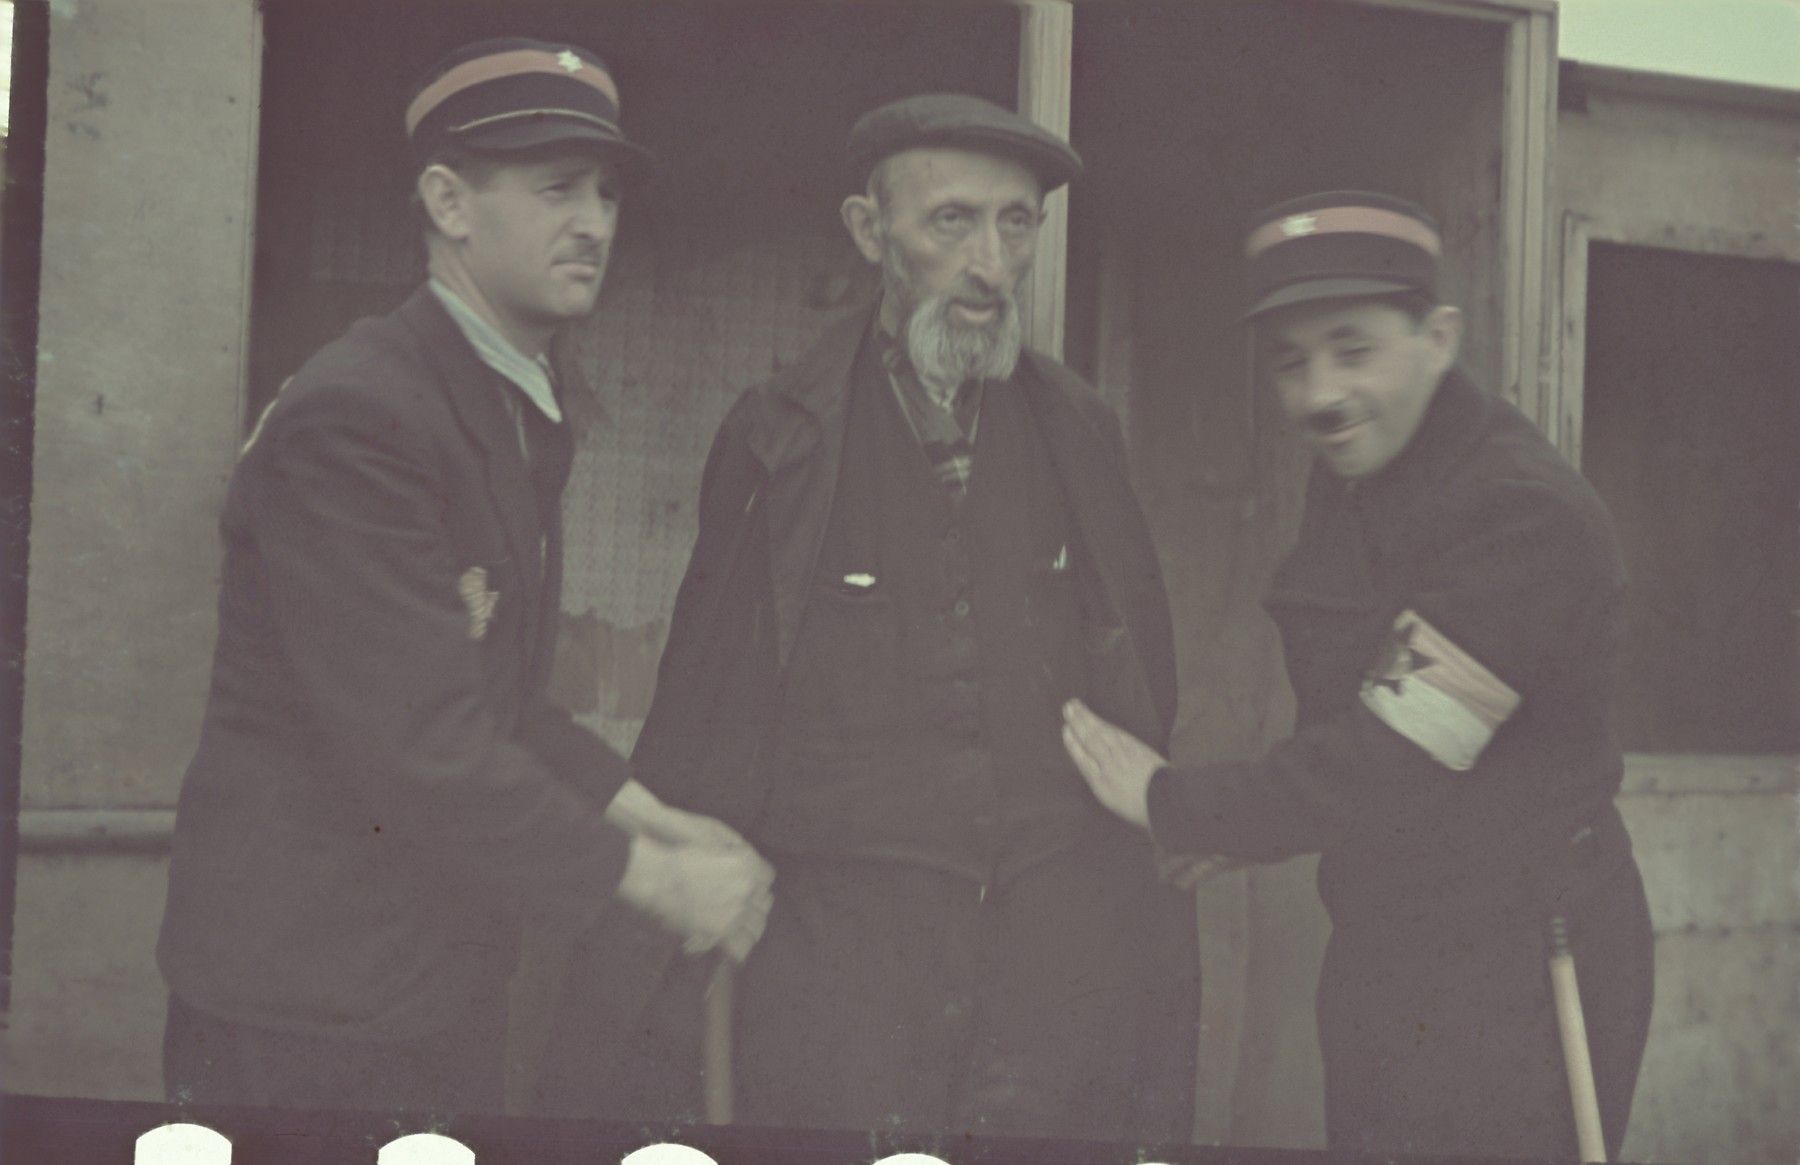 Jewish policemen arrest an elderly Jew in the Lodz ghetto in what appears to be a staged photograph.